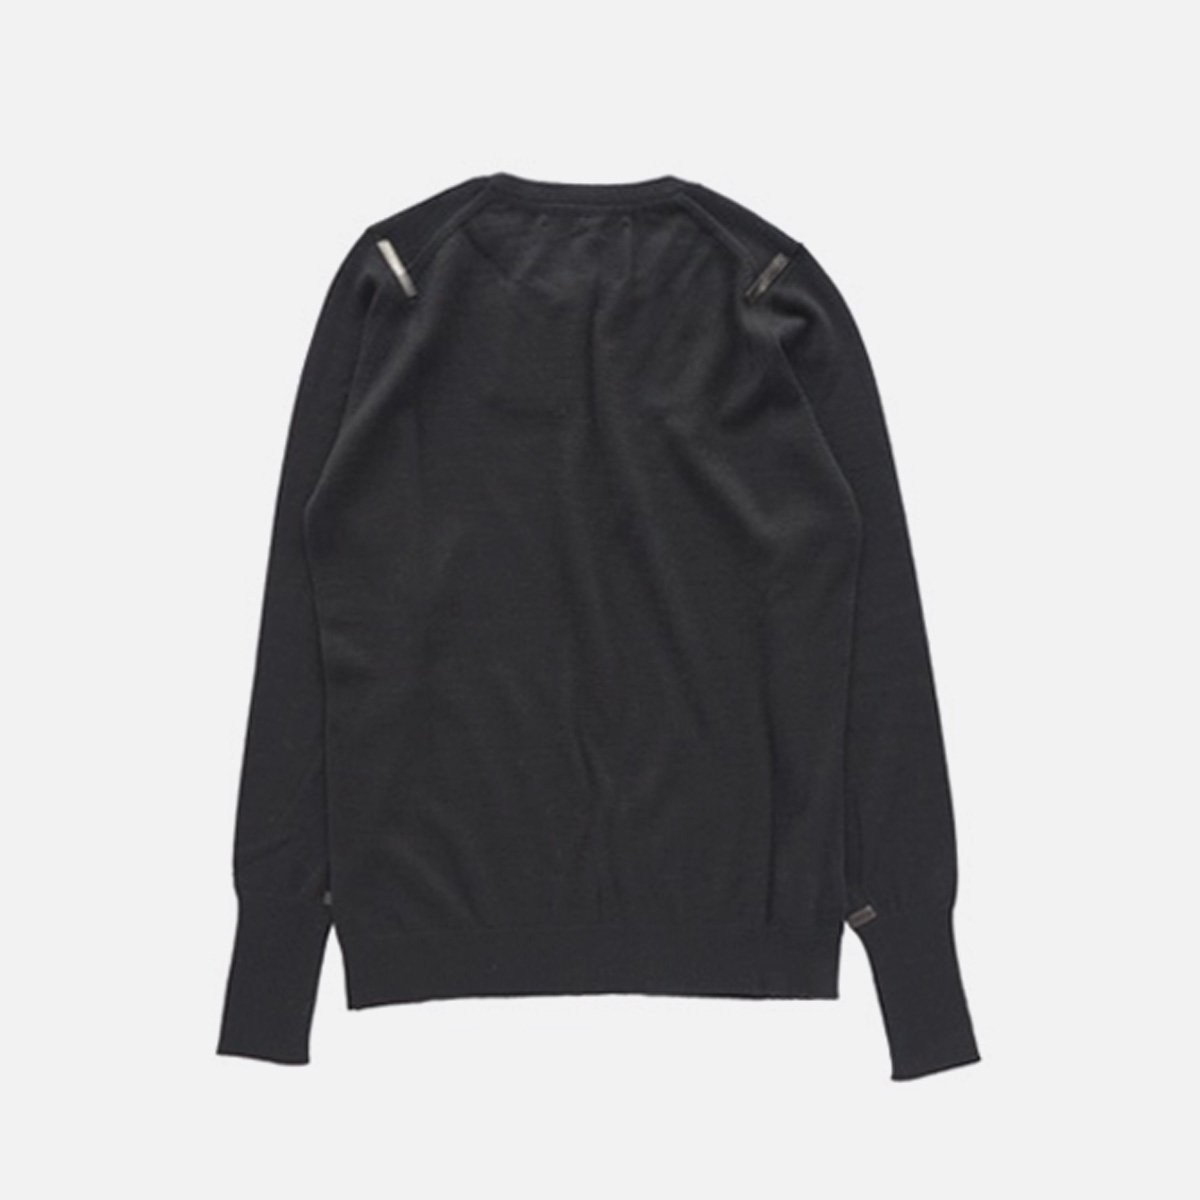 THE INOUE BROTHERS…  High Gauge Crew Neck Pullover (Black)2